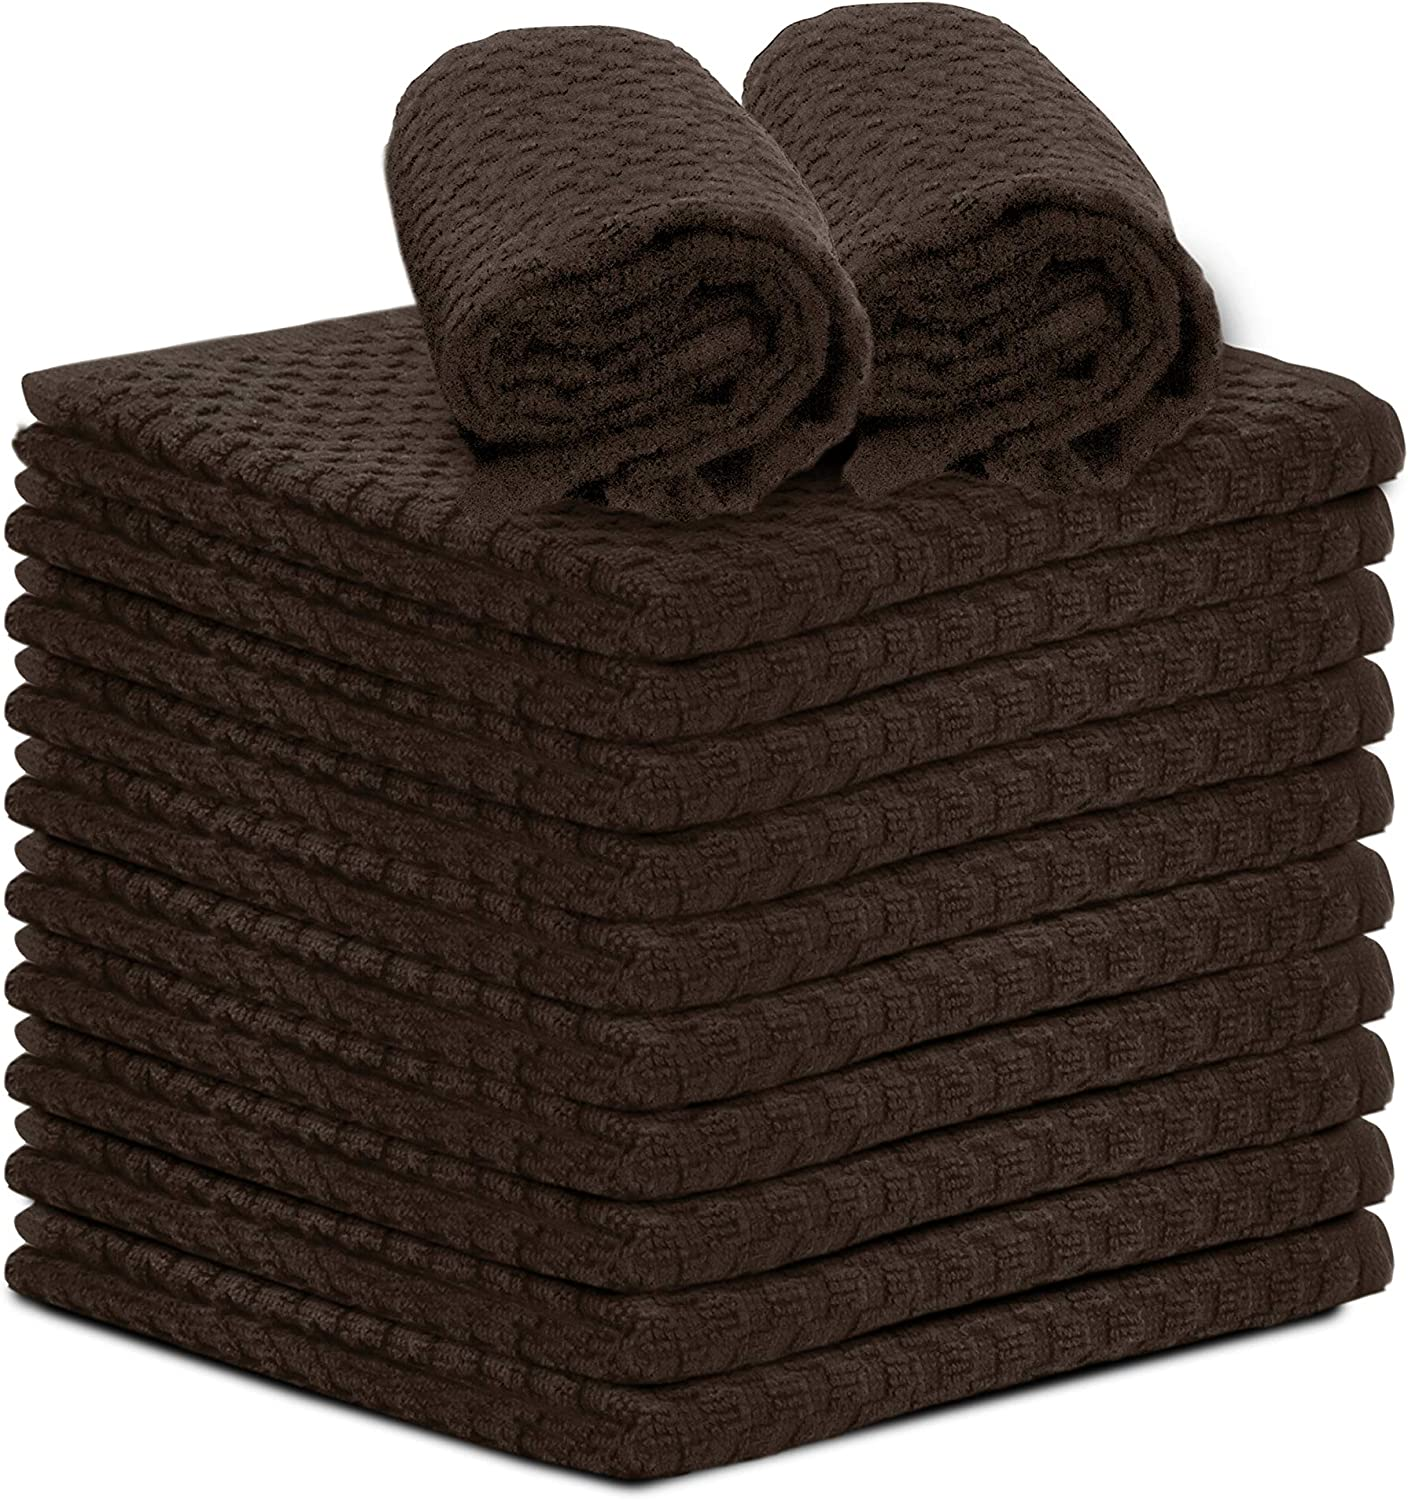 """Talvania Dishcloths for Kitchen Cotton Terry Dish Cloths 12 Pack Soft and Absorbent Cleaning Dish Rag 12"""" X 12"""" Small Dish Towels (Brown)"""